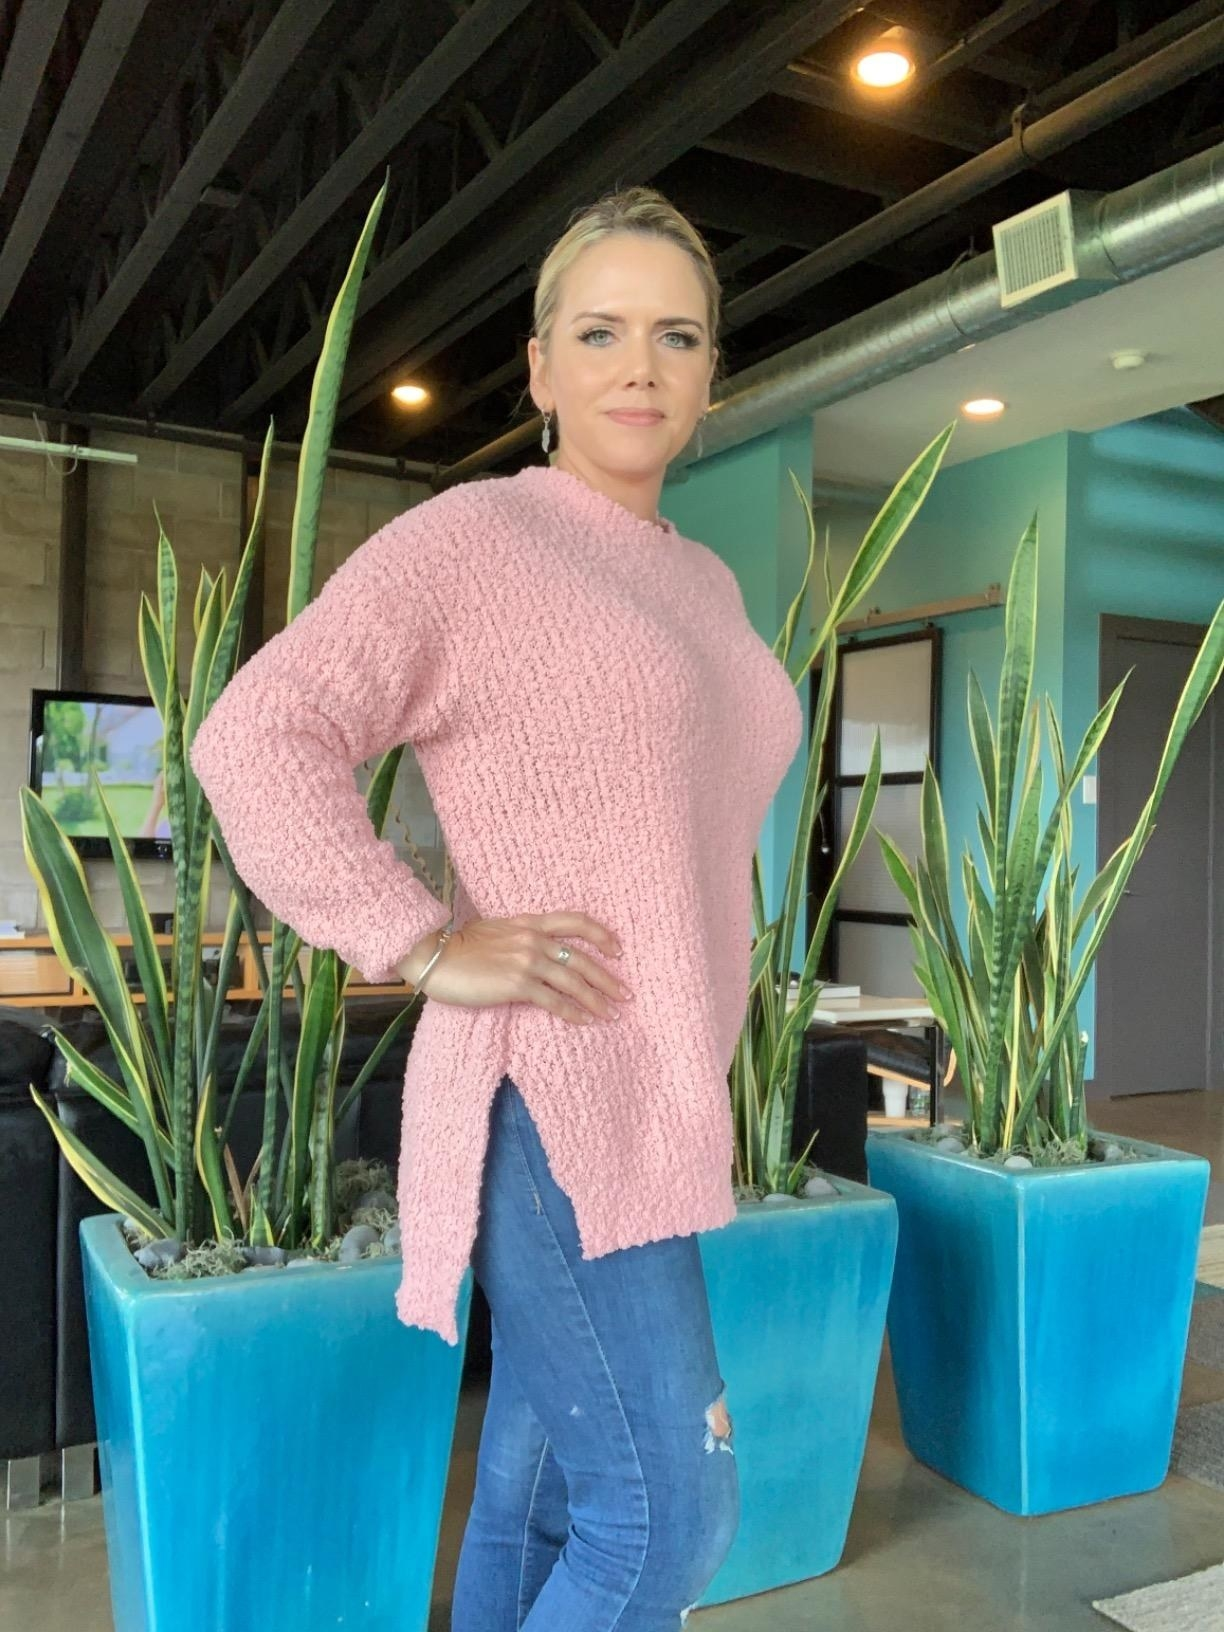 Reviewer in the pink chunky knit sweater